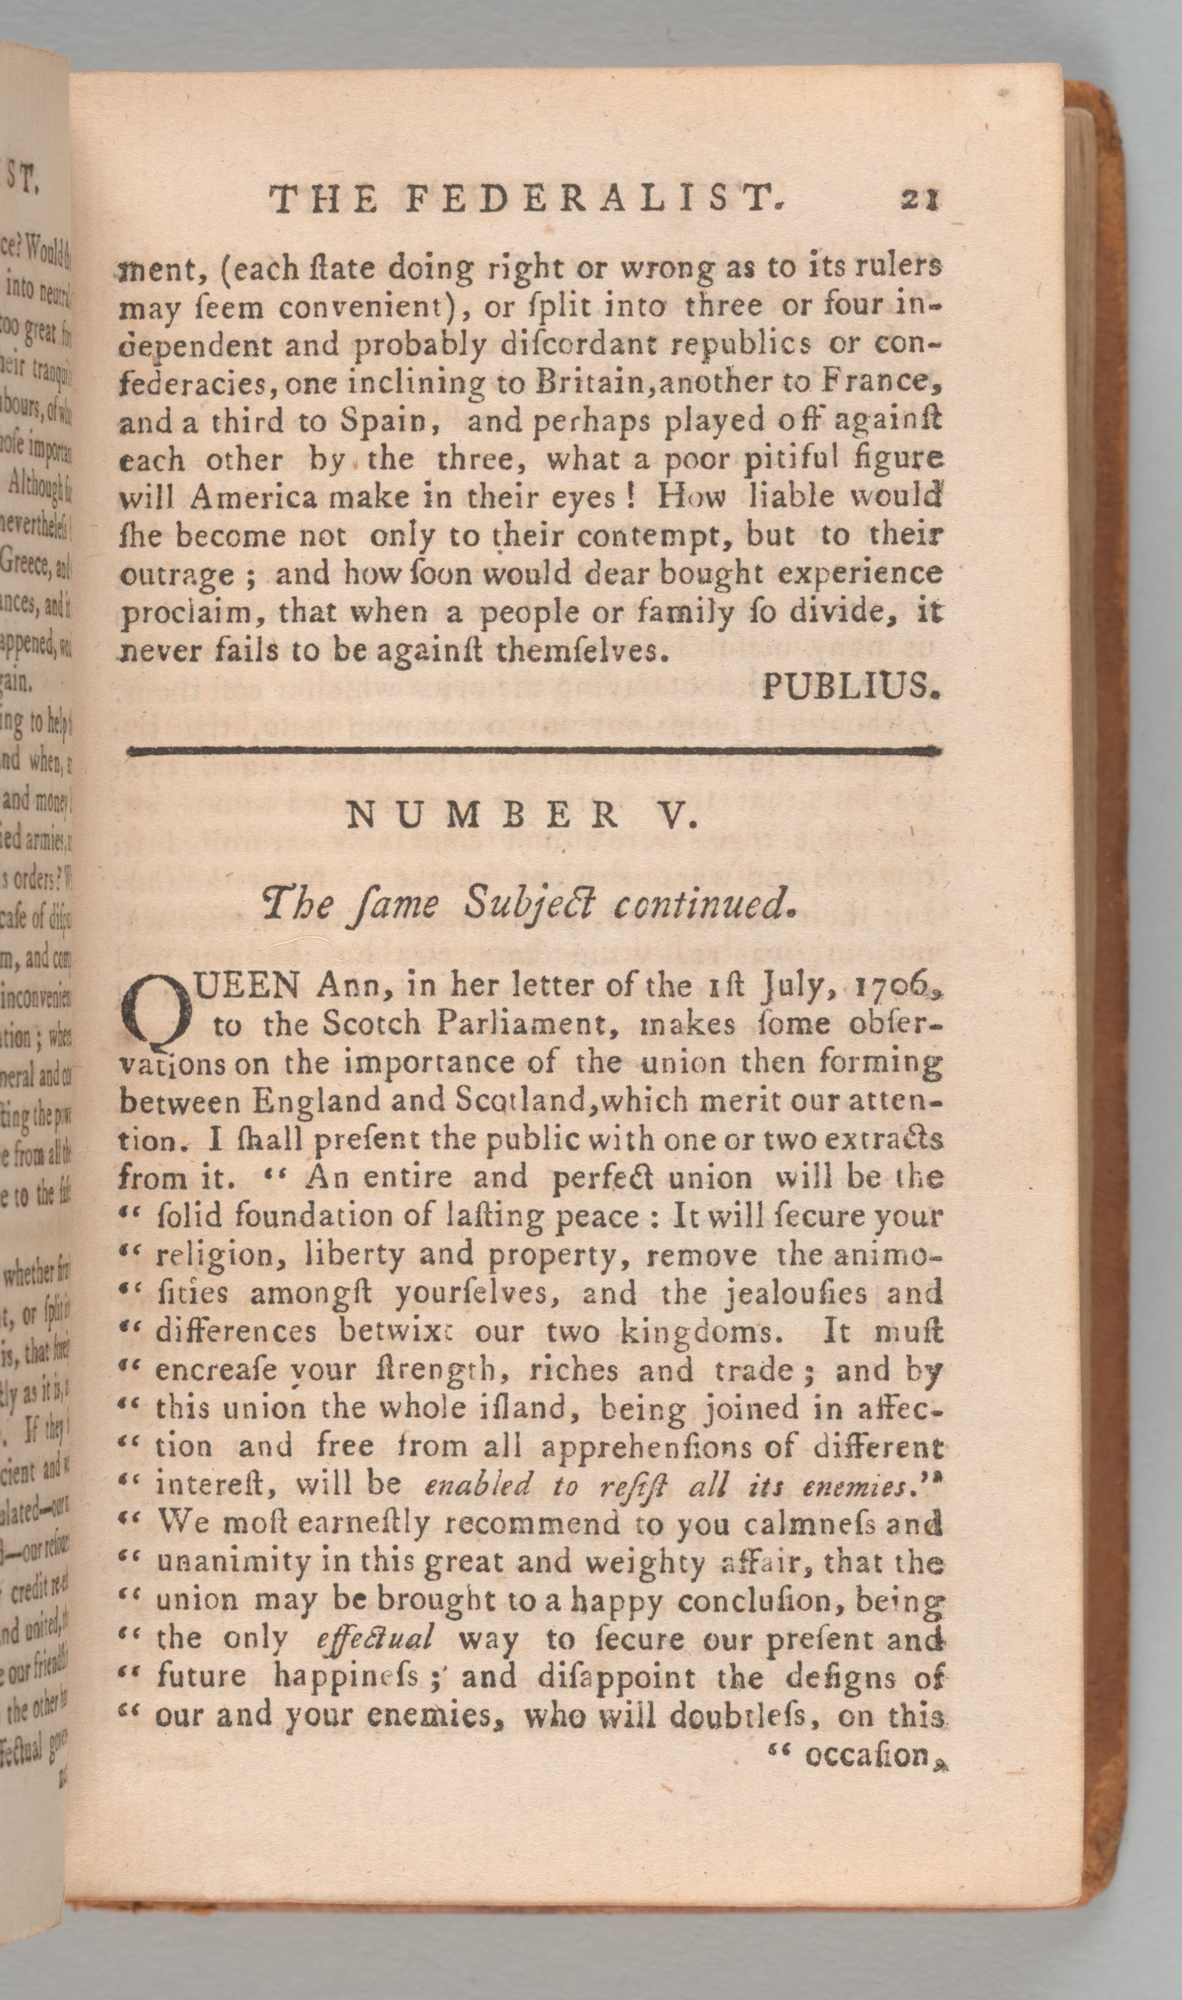 The Federalist , page 21